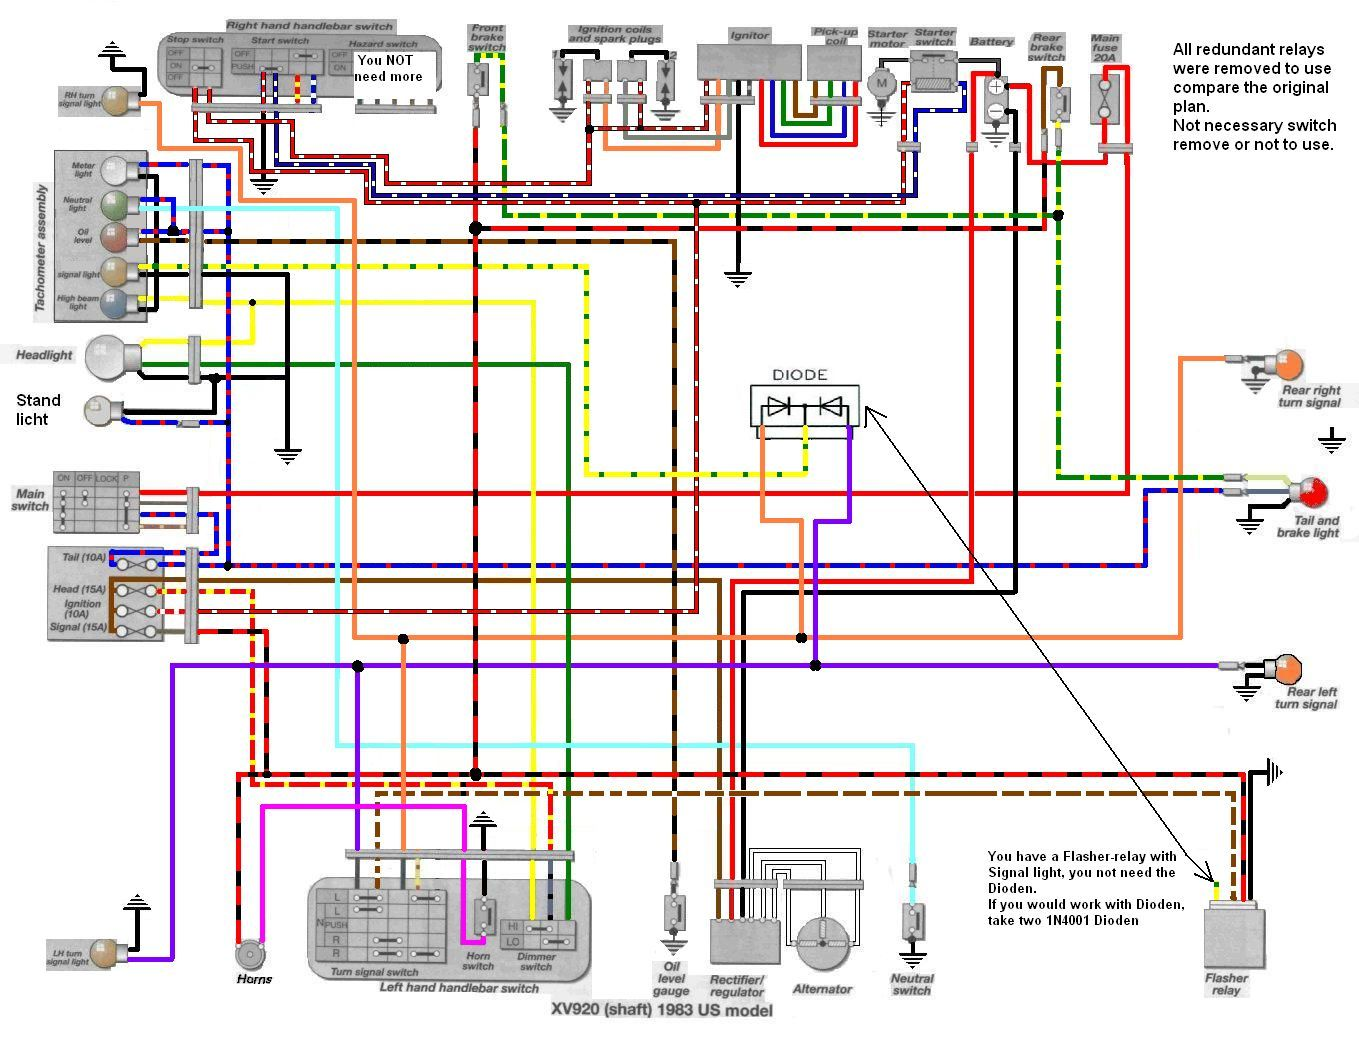 Yamaha Virago 1000cc Wiring Diagram - suzuki intruder 1400 ... on